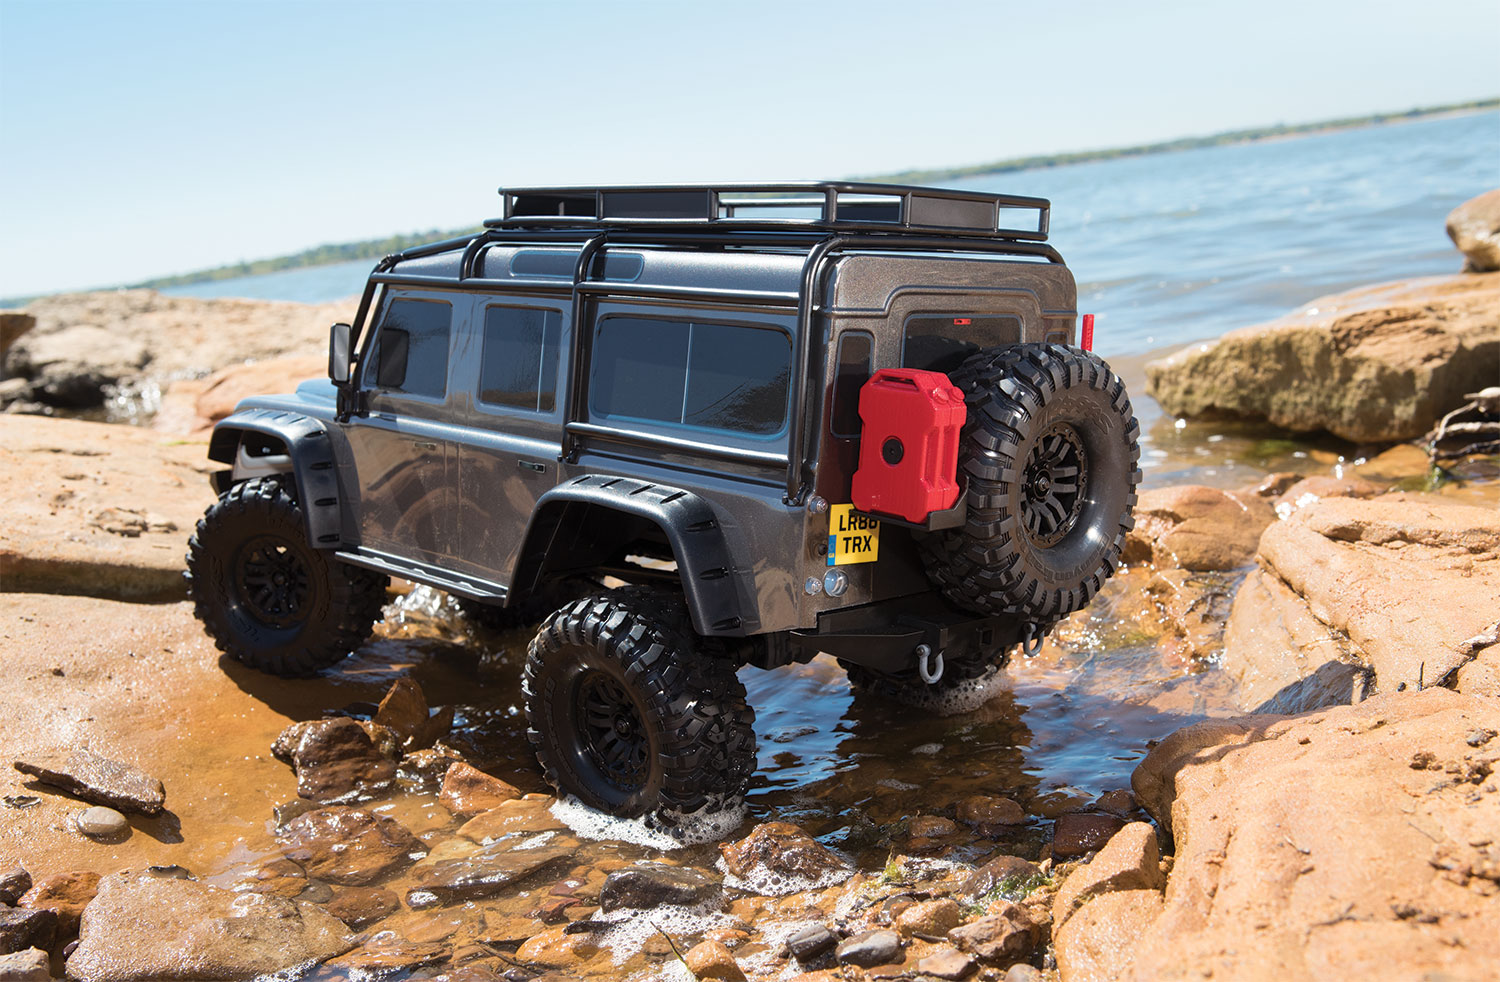 Traxxas TRX-4 1/10 Scale And Trail Crawler - Page 6 82056-4-Defender-lake-rear-Gray